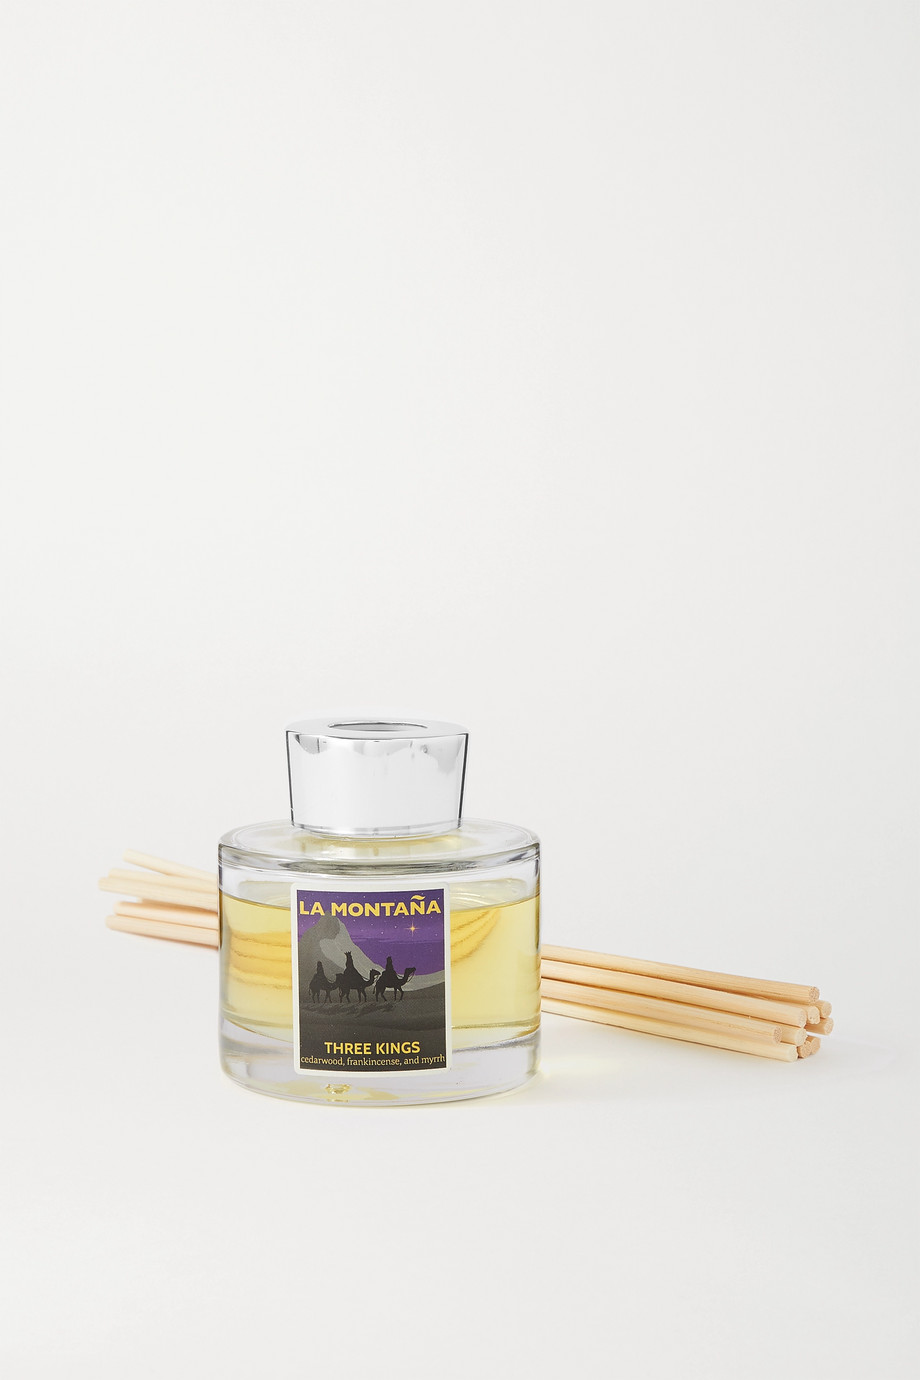 LA MONTAÑA Reed Diffuser - Three Kings, 120ml